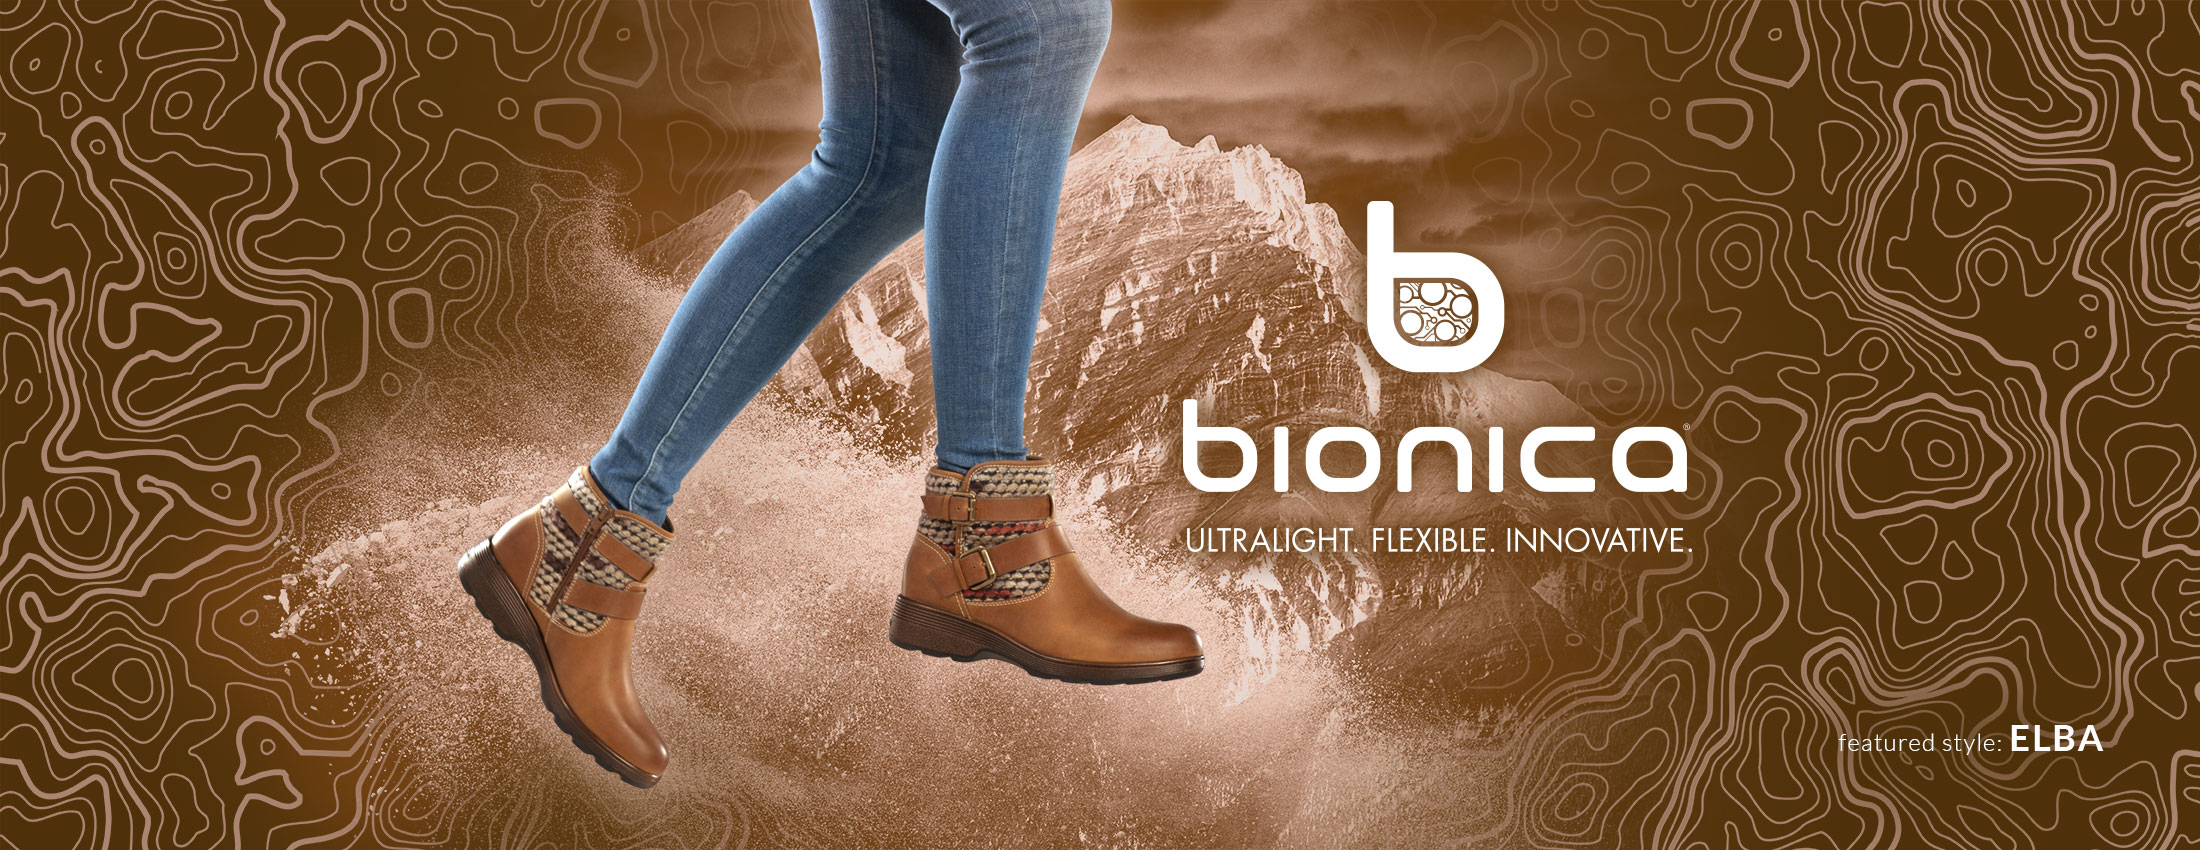 Bionica: Ultralight, Flexible, Innovative. Featured style: Elba boot, shown in almond tan on jumping model wearing jeans